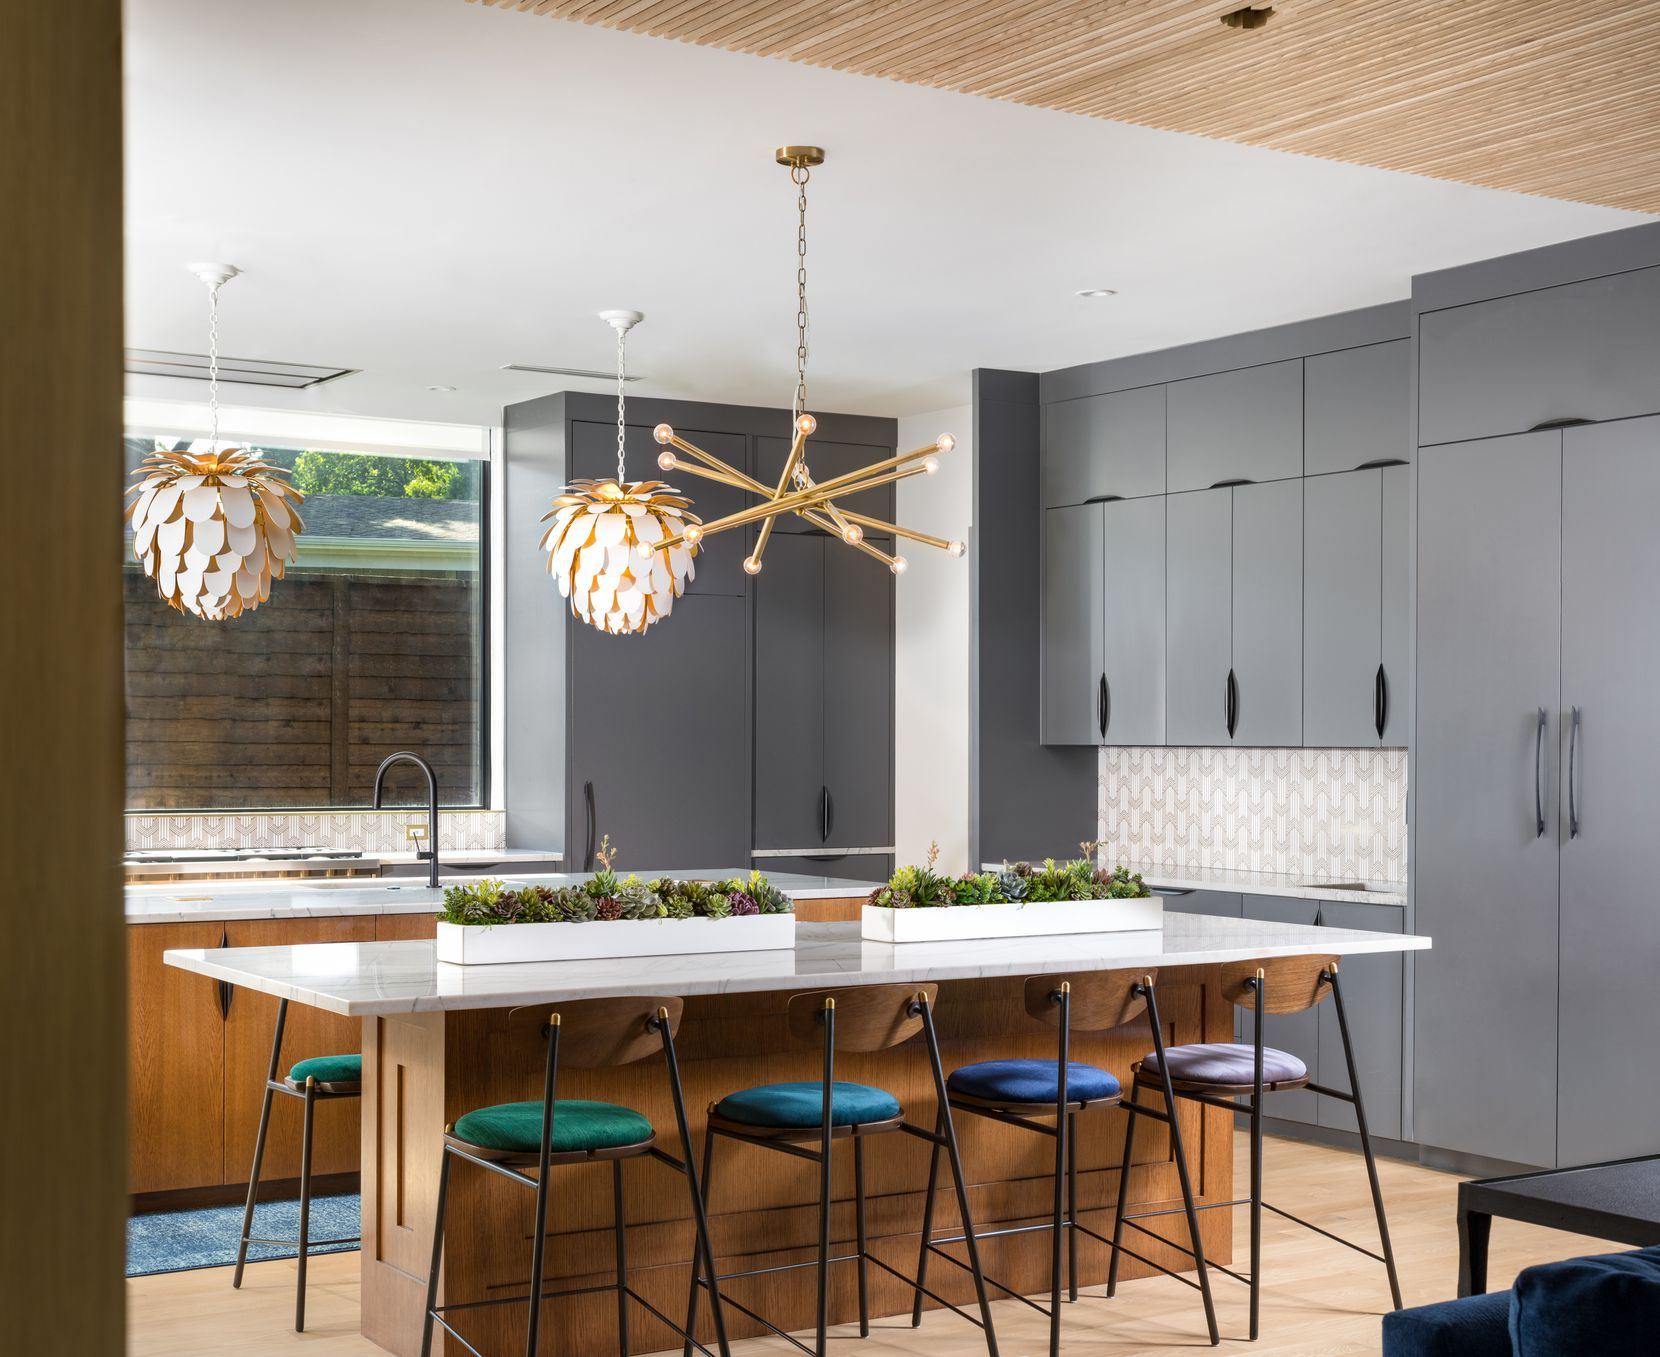 A Lakewood home renovated by Maestri Studio is included in the 2019 AIA Dallas Tour of Homes.